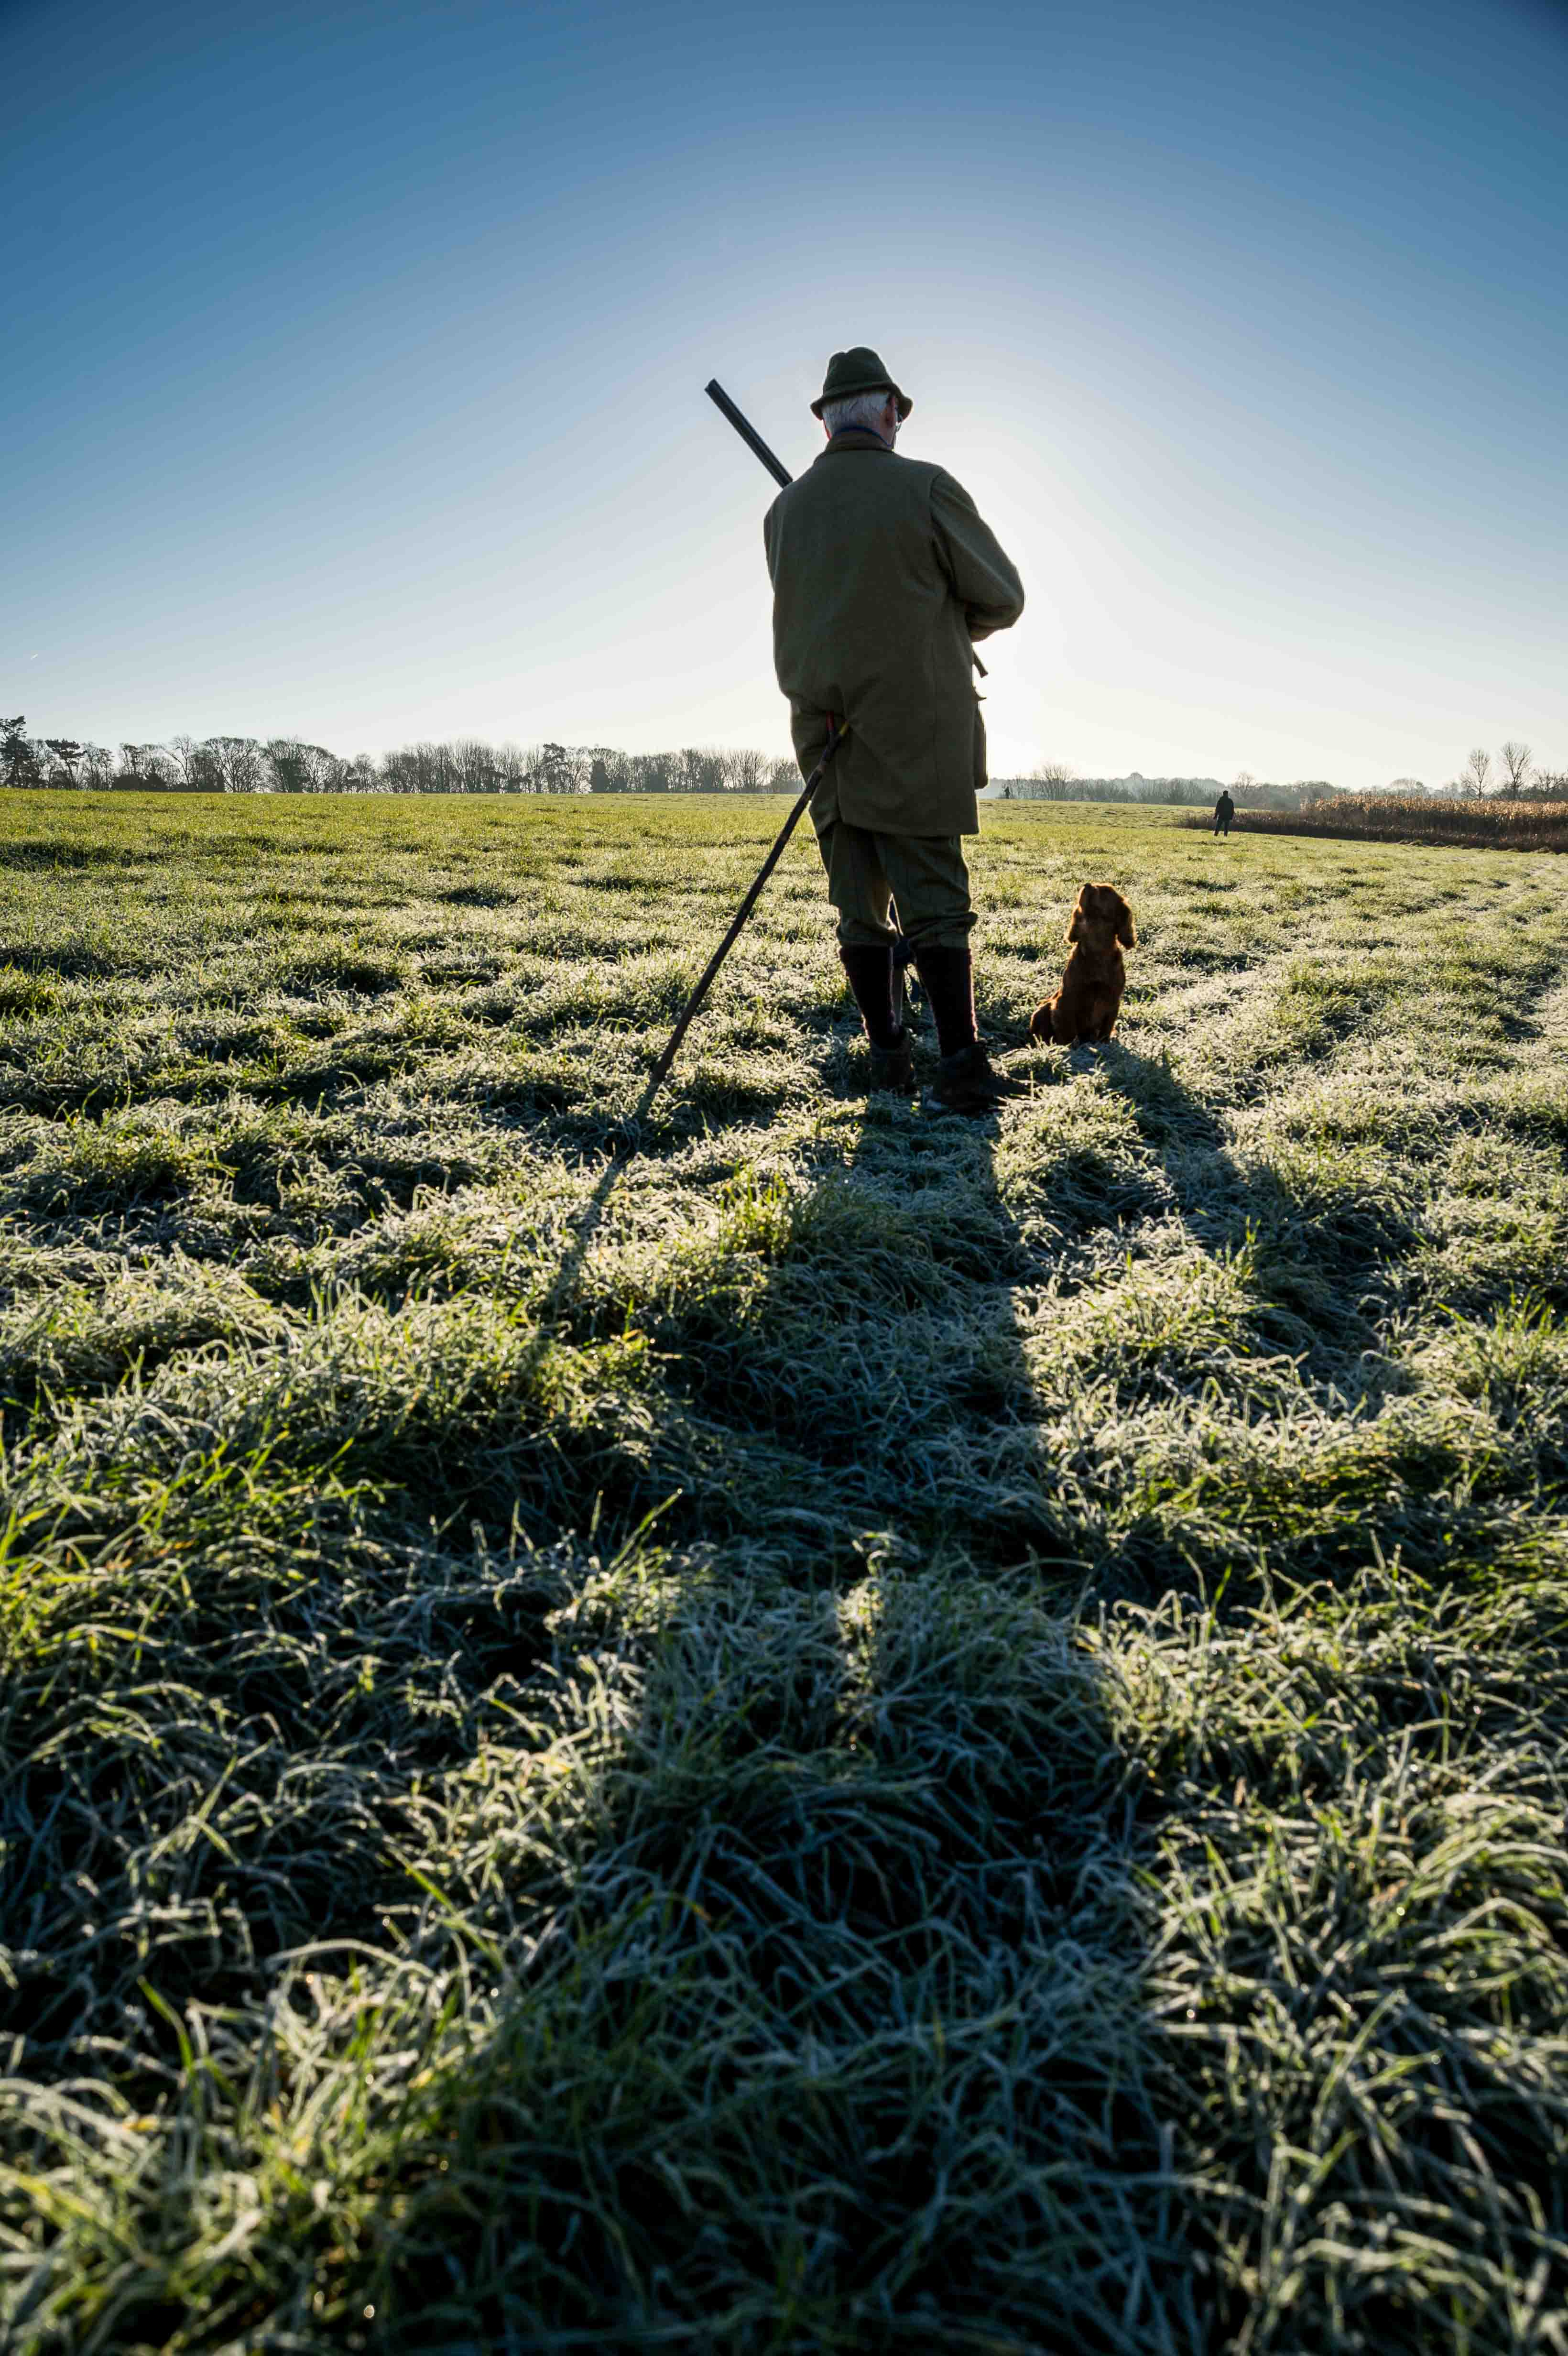 Fieldsports Stock Photography